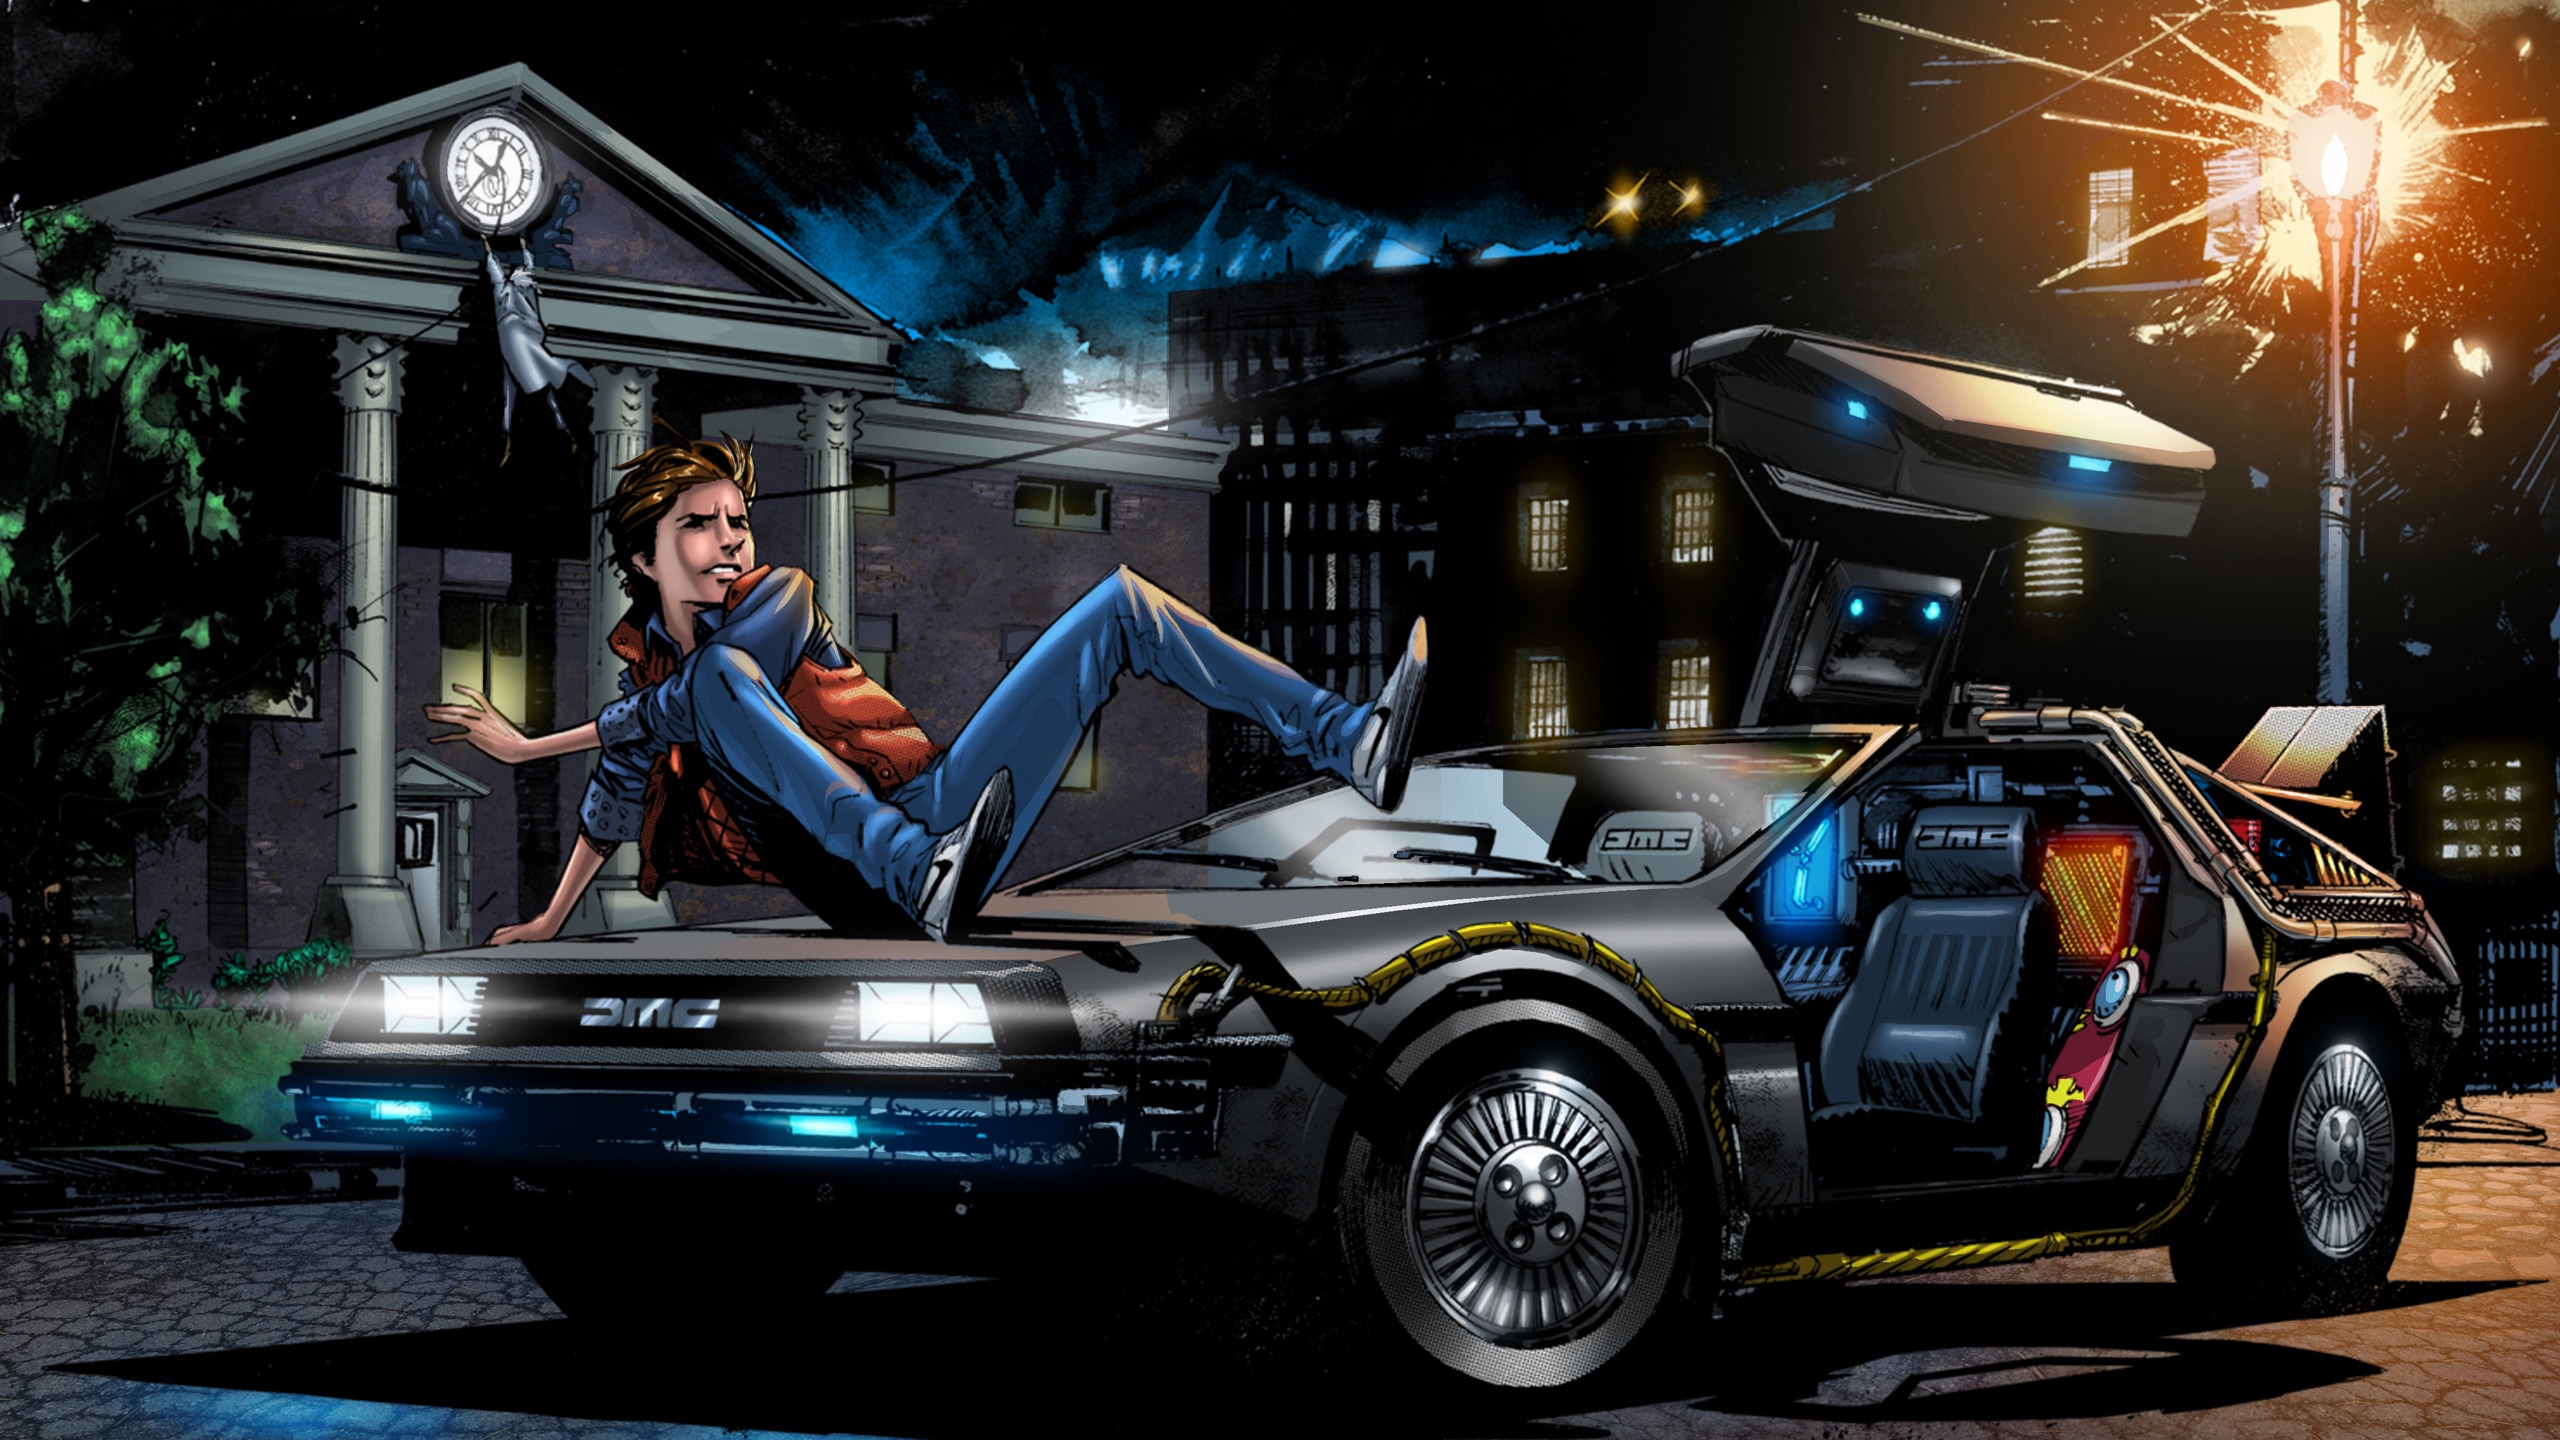 Download wallpaper 2560x1440 back to the future marty mcfly art 2560x1440